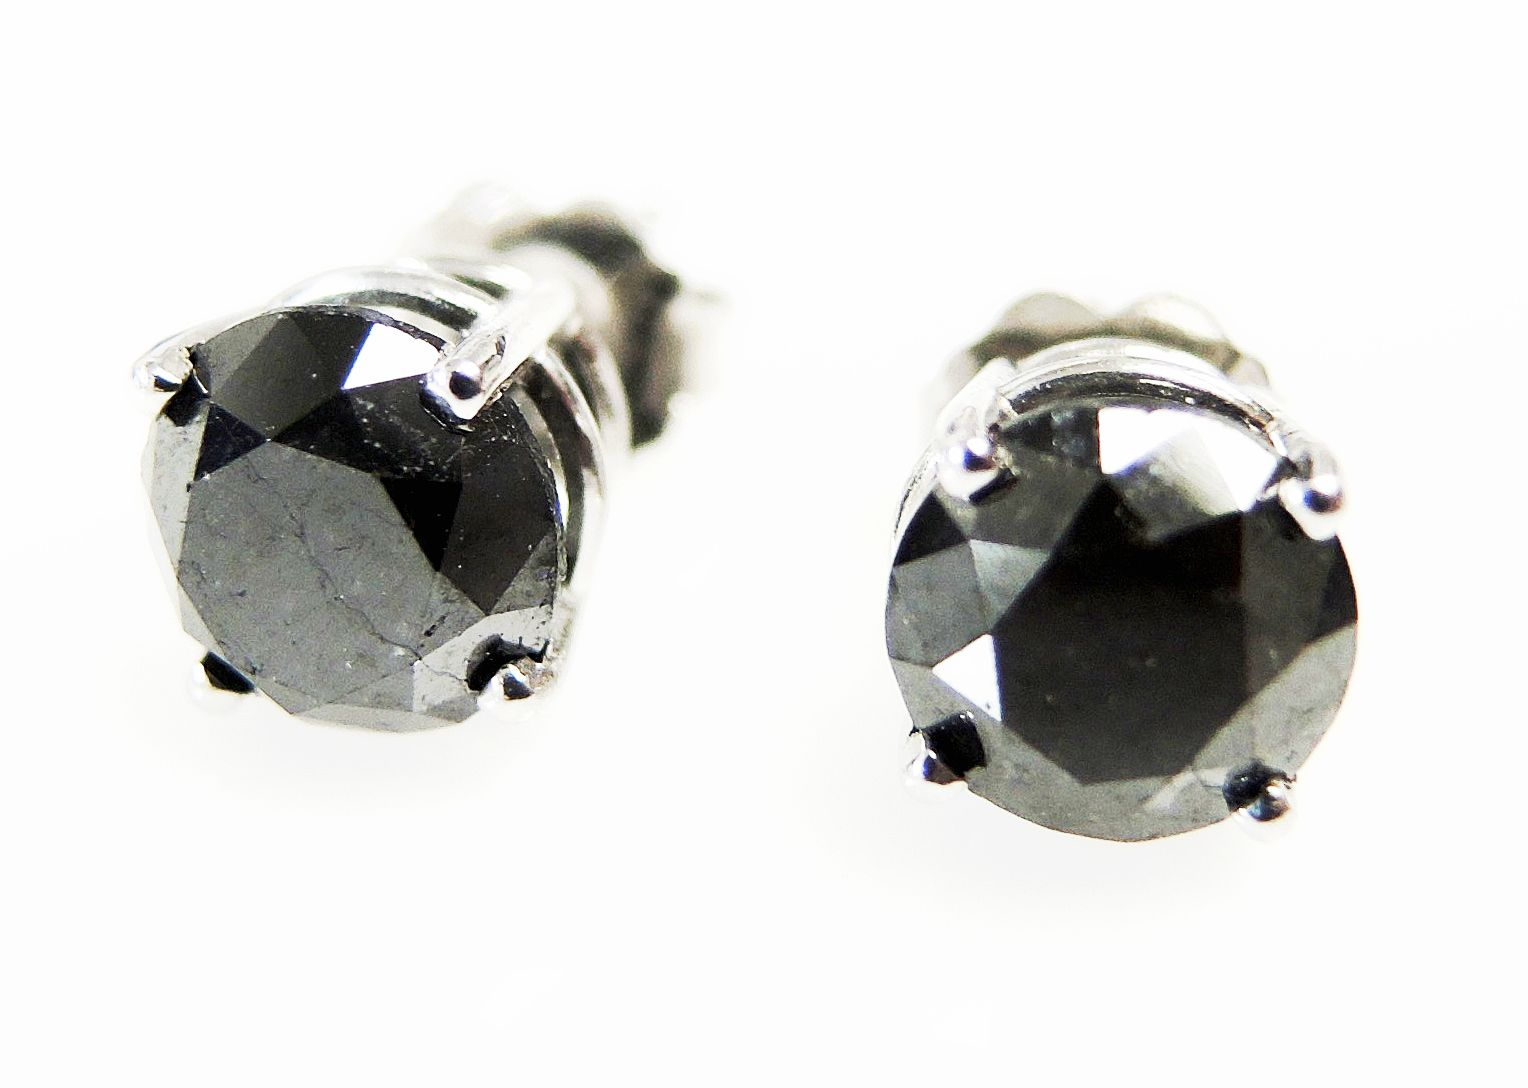 Fall In Love With These Stunning Vintage Black Diamond Stud Earrings At Cynthia Findlay Antiques